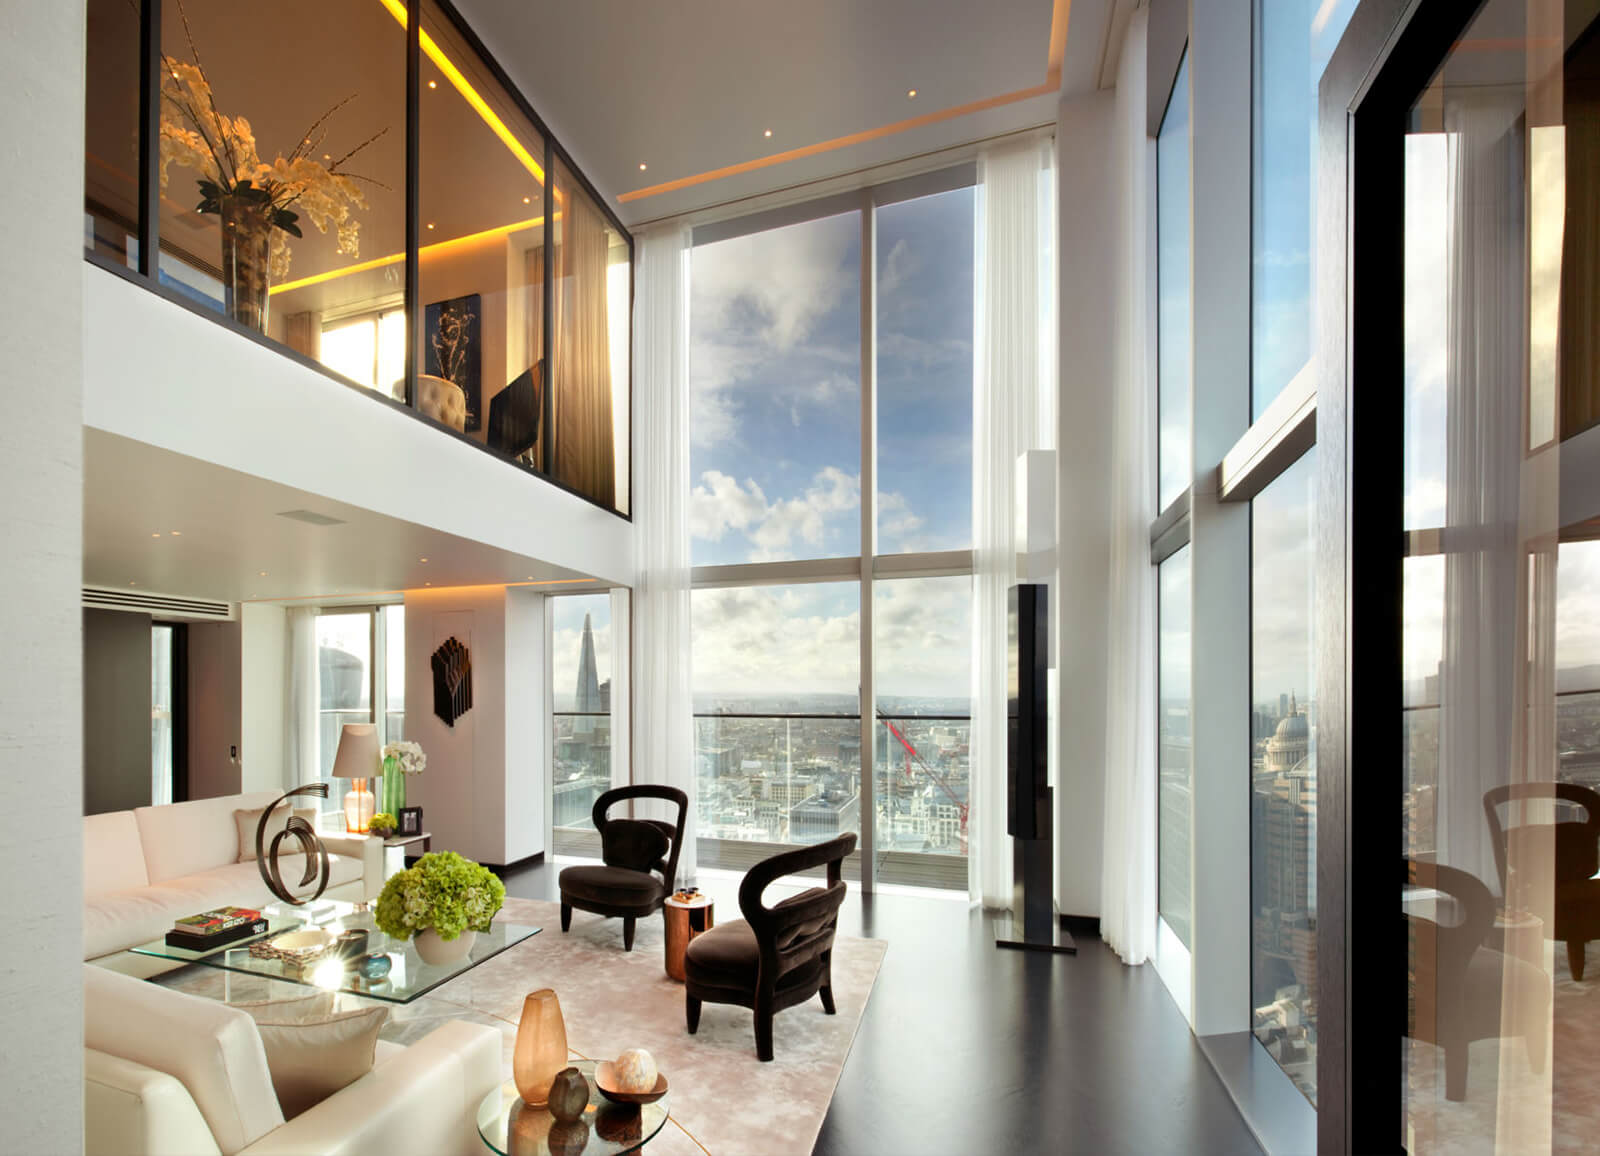 Measuring A Grandiose 6 000 Square Feet With Four Bedrooms And Bathrooms The Duplex Apartment Is Filled Light Through Its Massive